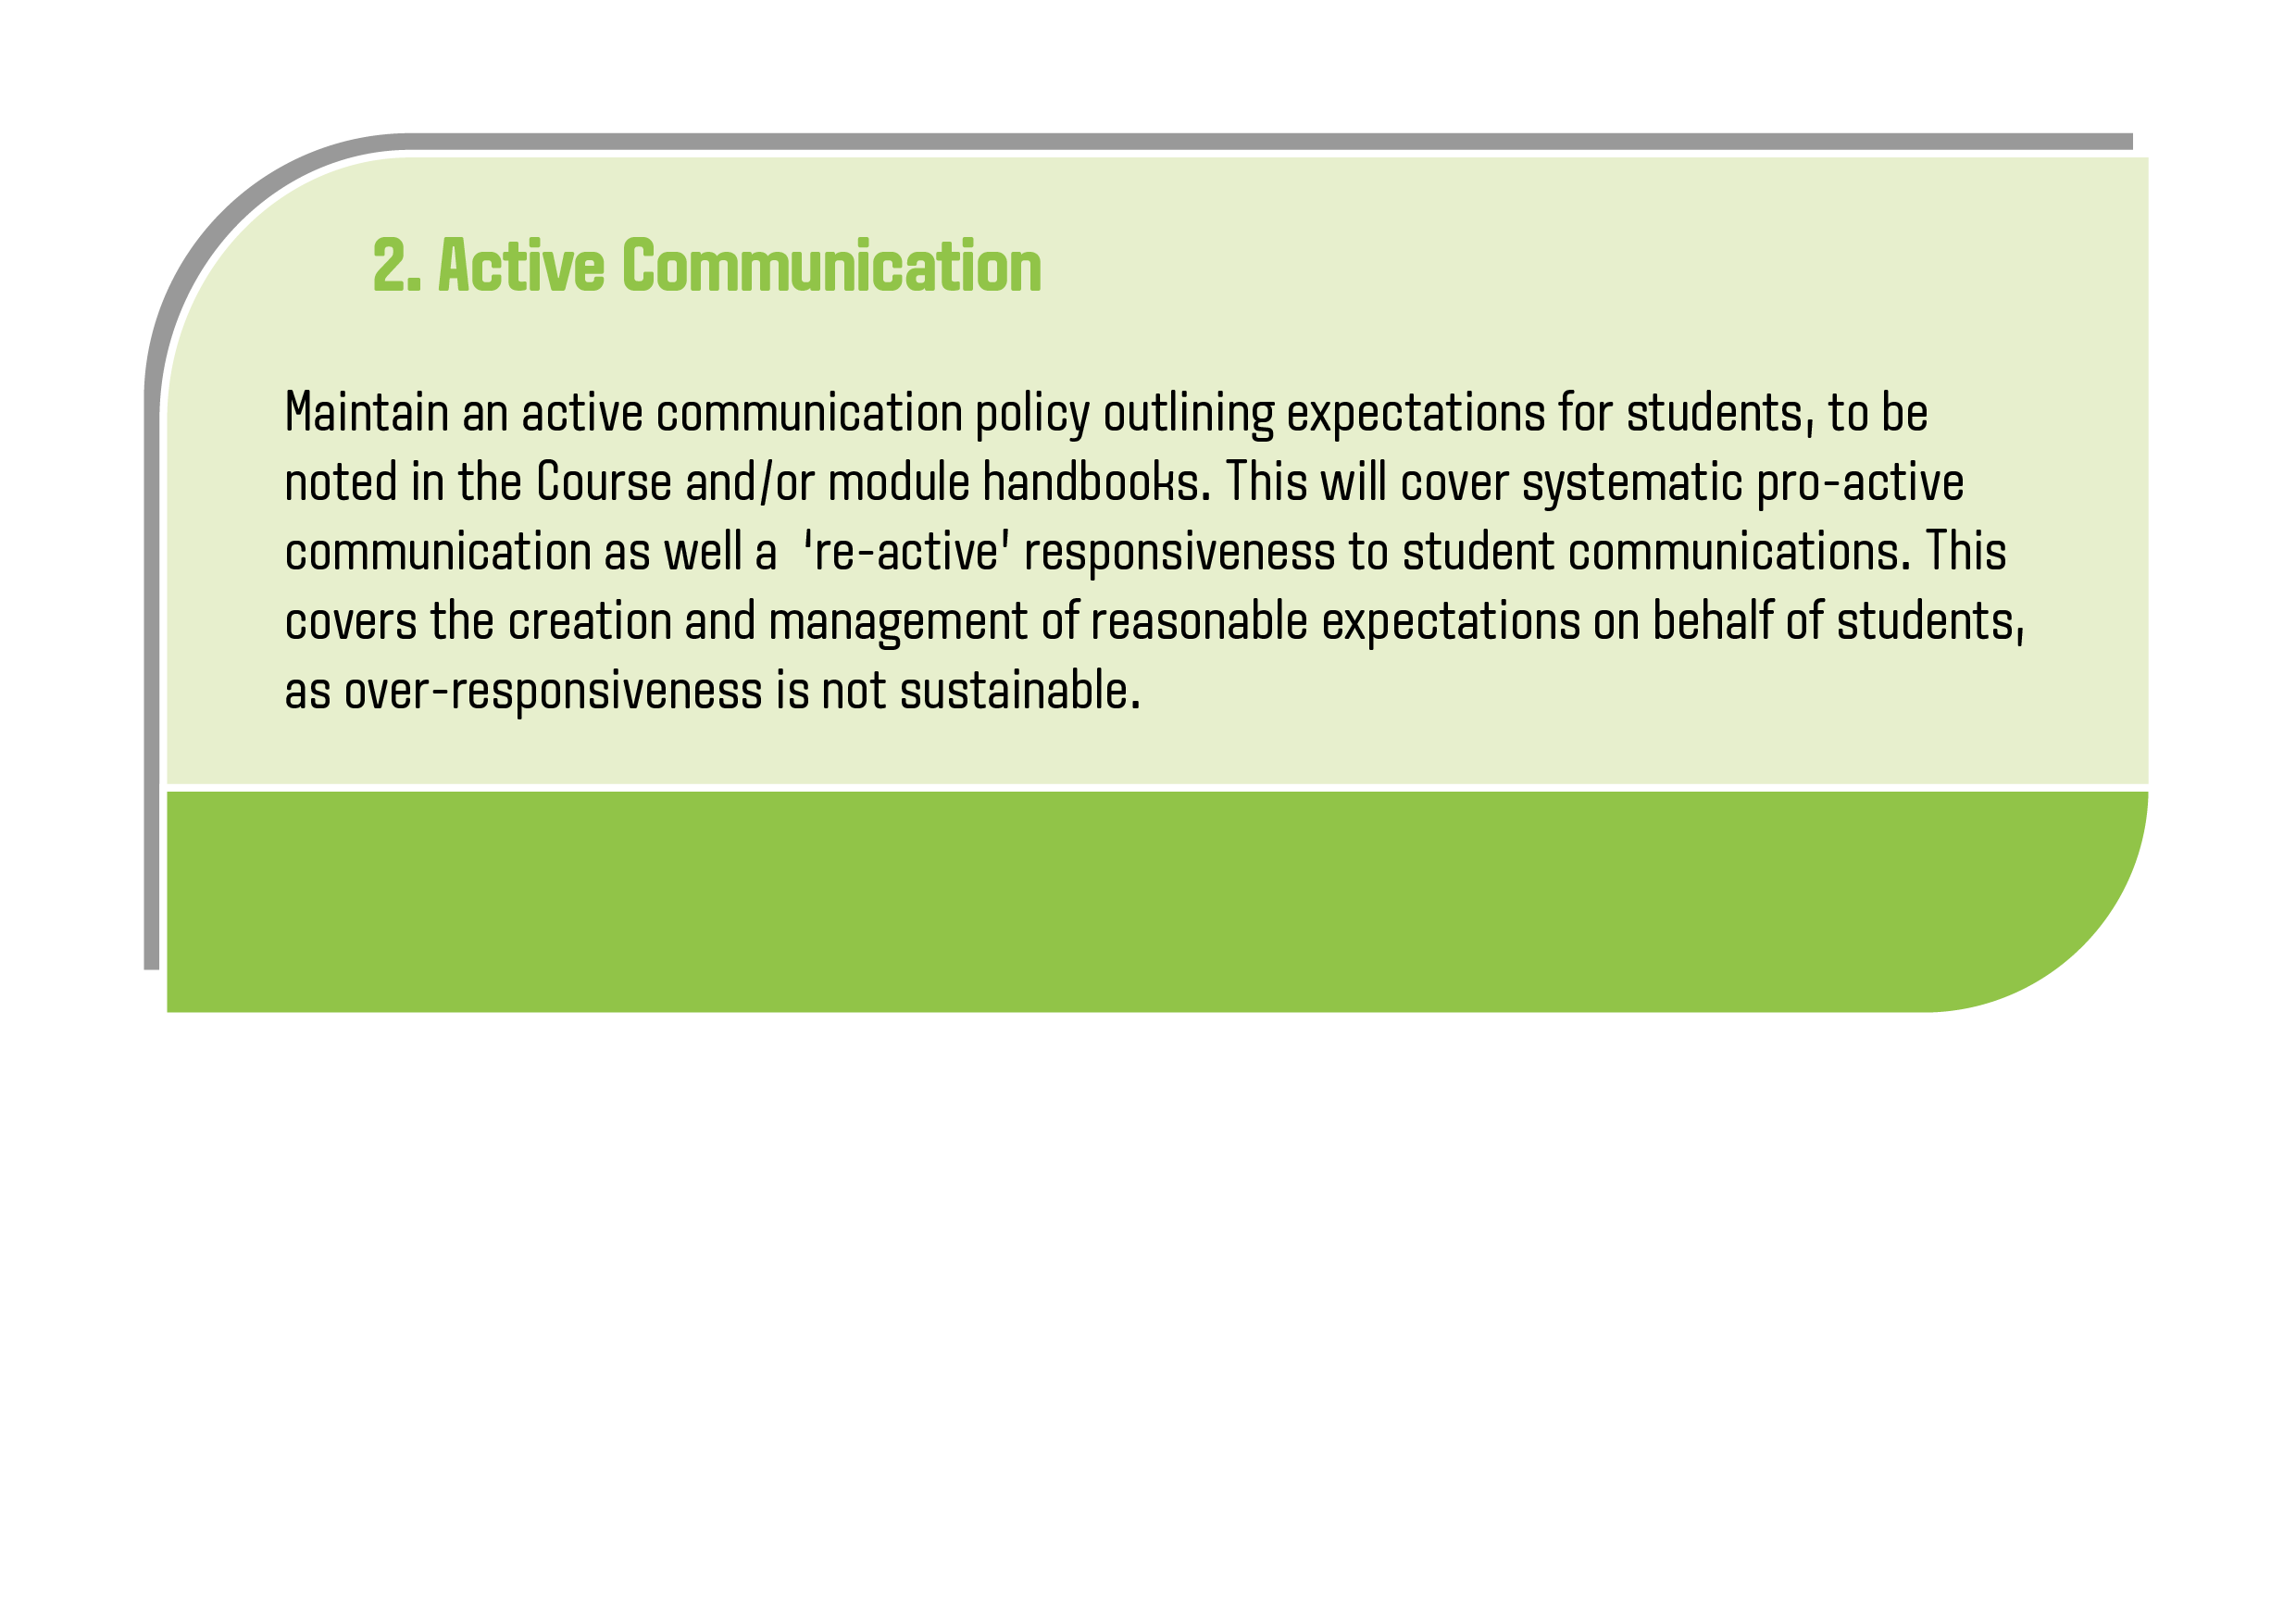 Active communication explanation - please see downloadable document for text version